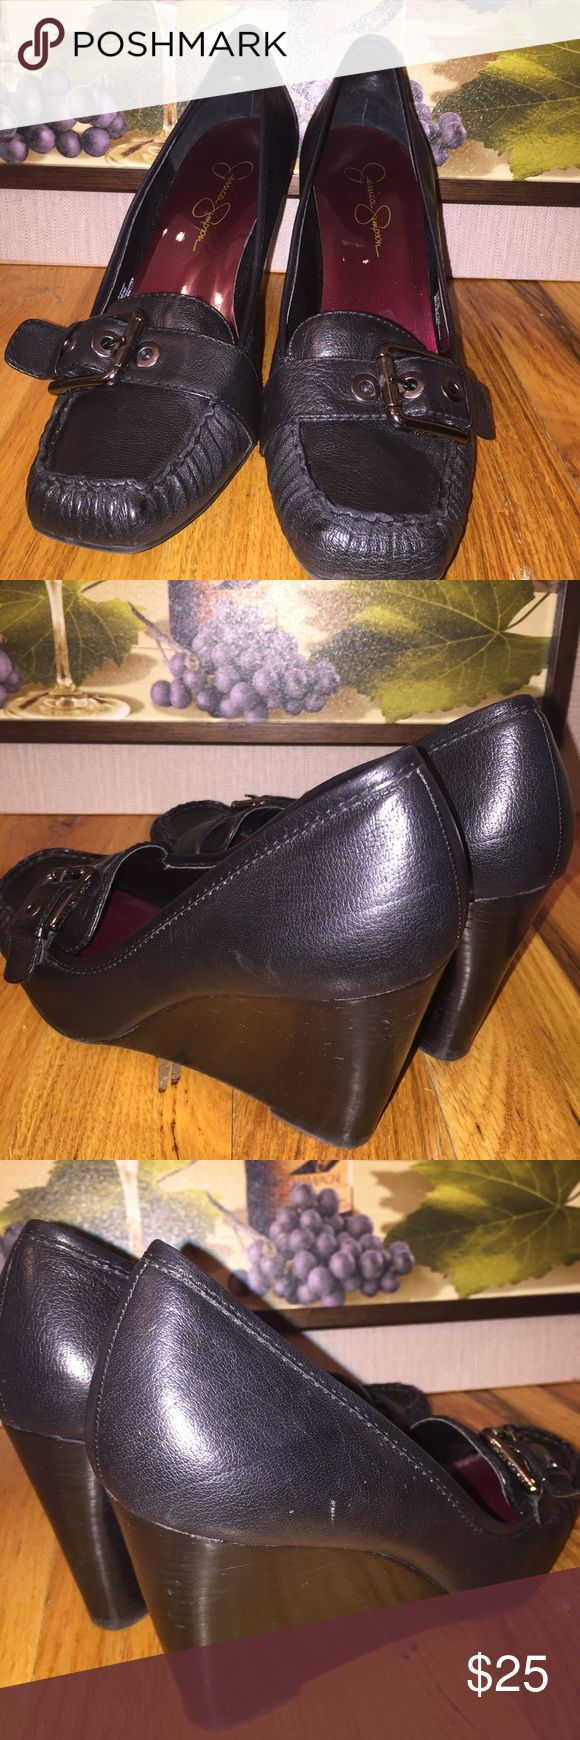 Jessica Simpson JS-Manny Wedge Size 10 Jessica Simpson Wedges, appx 3 1/2 inches wedge height, minor scuffing, original box (slightly crushed) Jessica Simpson Shoes Wedges